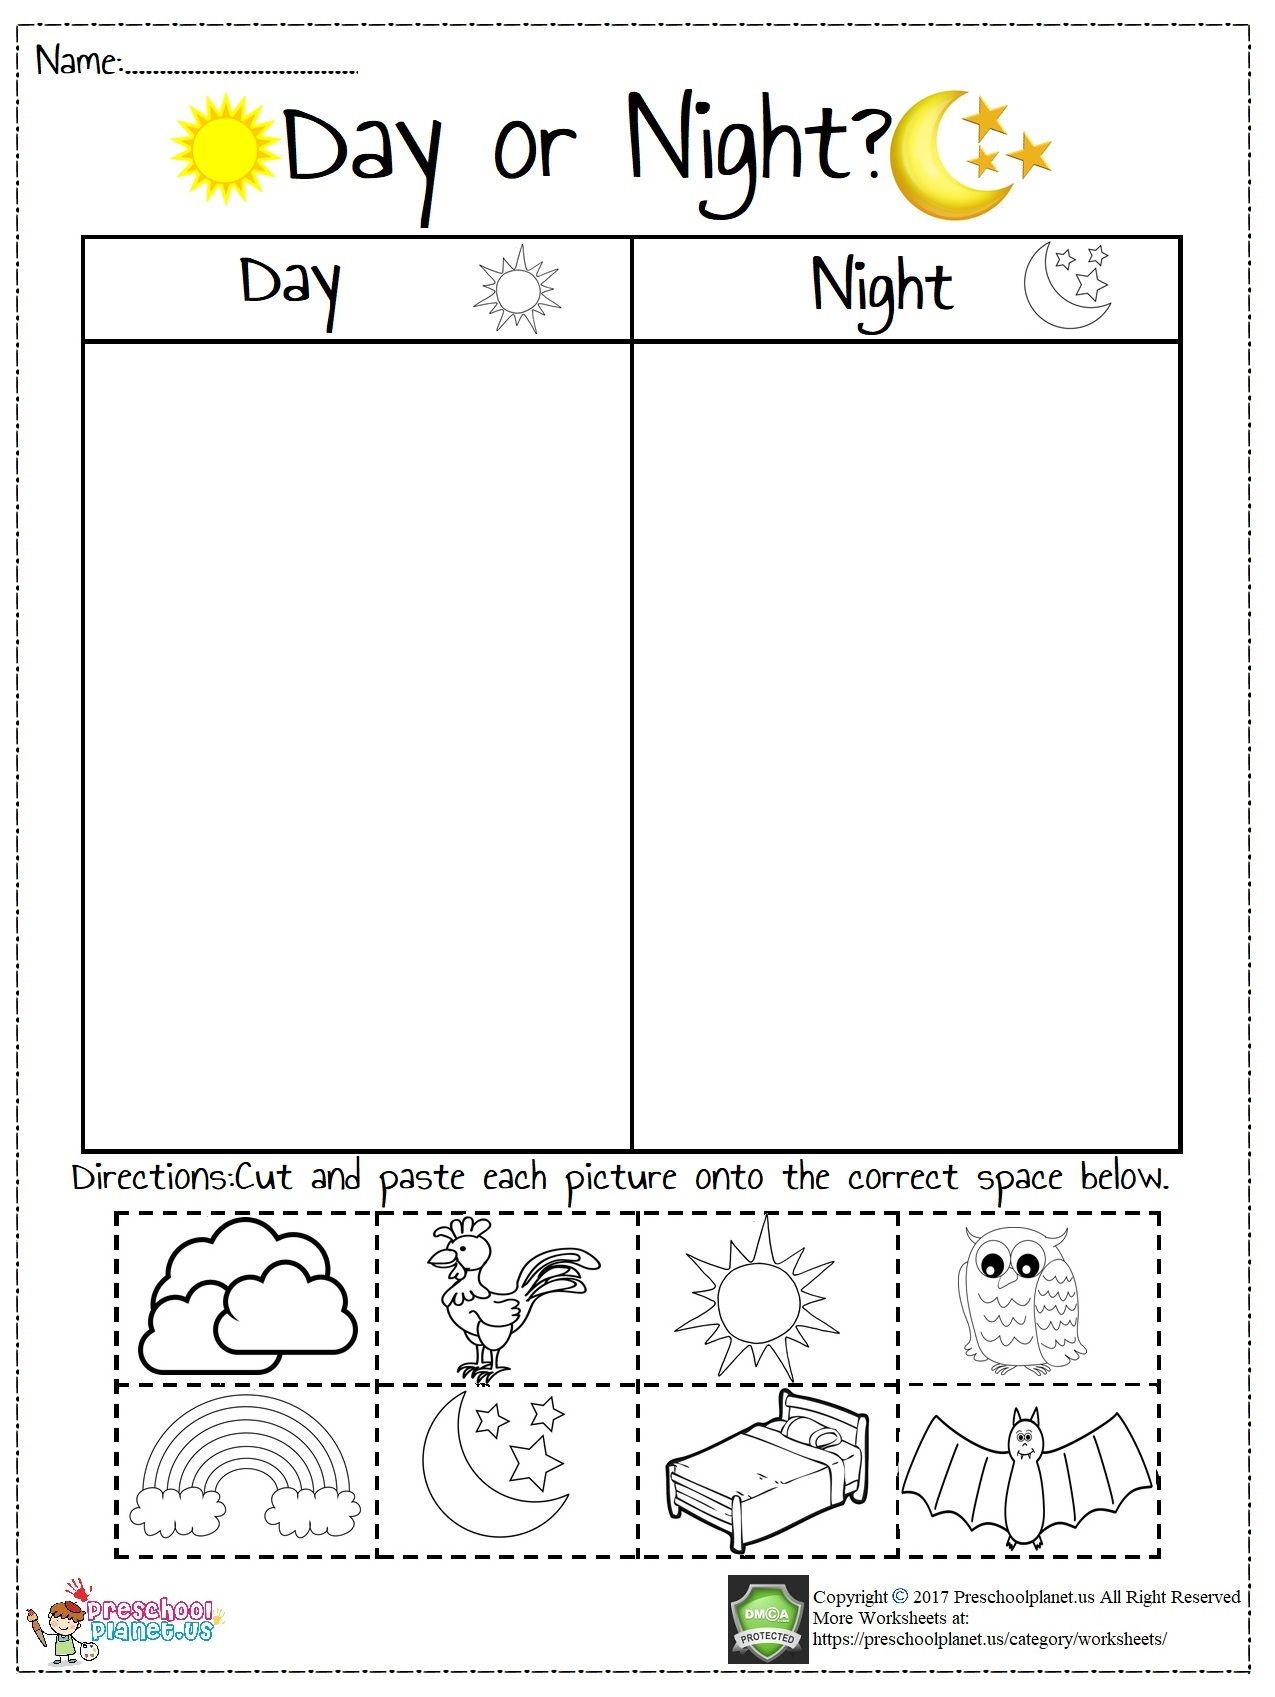 Today We Prepared A Worksheet About Day And Night There Are Pictures Which Are A Sight Words Kindergarten Activities Kids Math Worksheets Preschool Worksheets